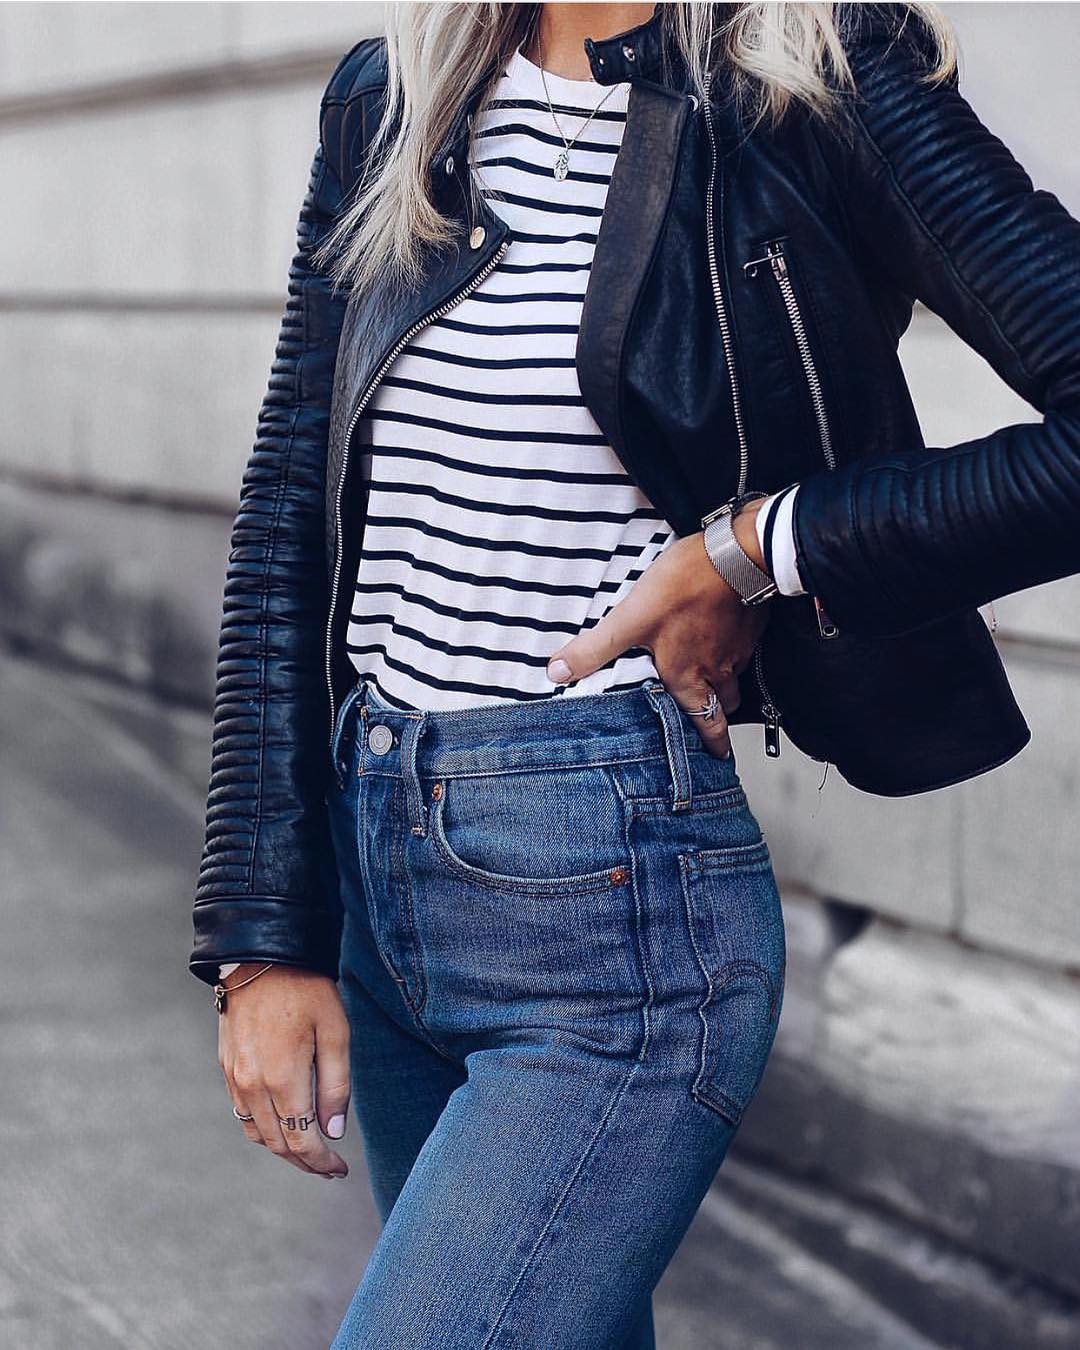 Black Leather Jacket, Striped Top And High Rise Jeans For Fall 2021